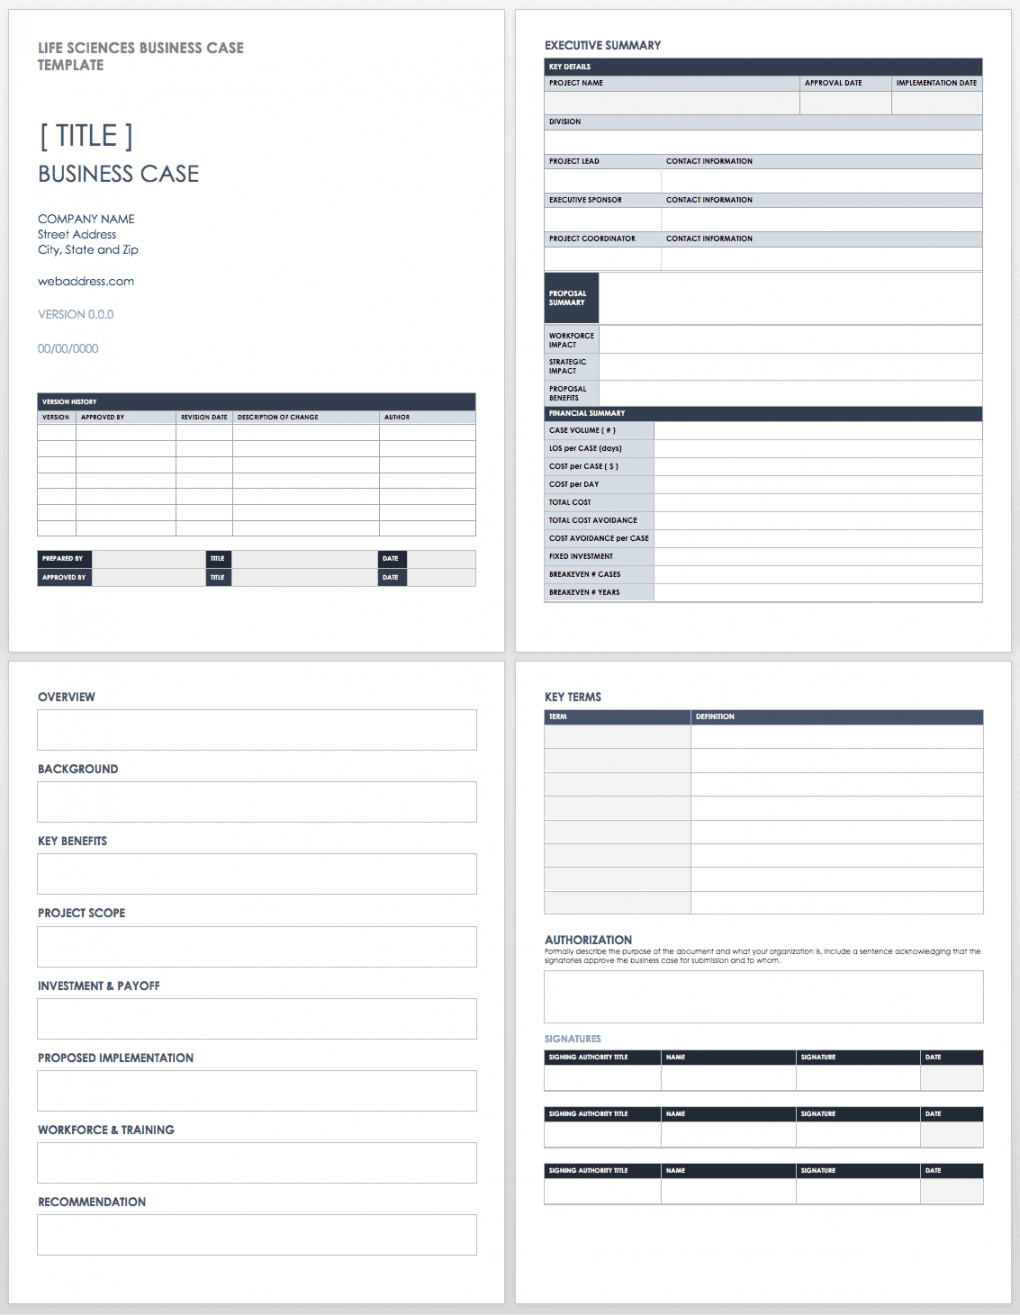 free business case templates  smartsheet business case proposal template excel